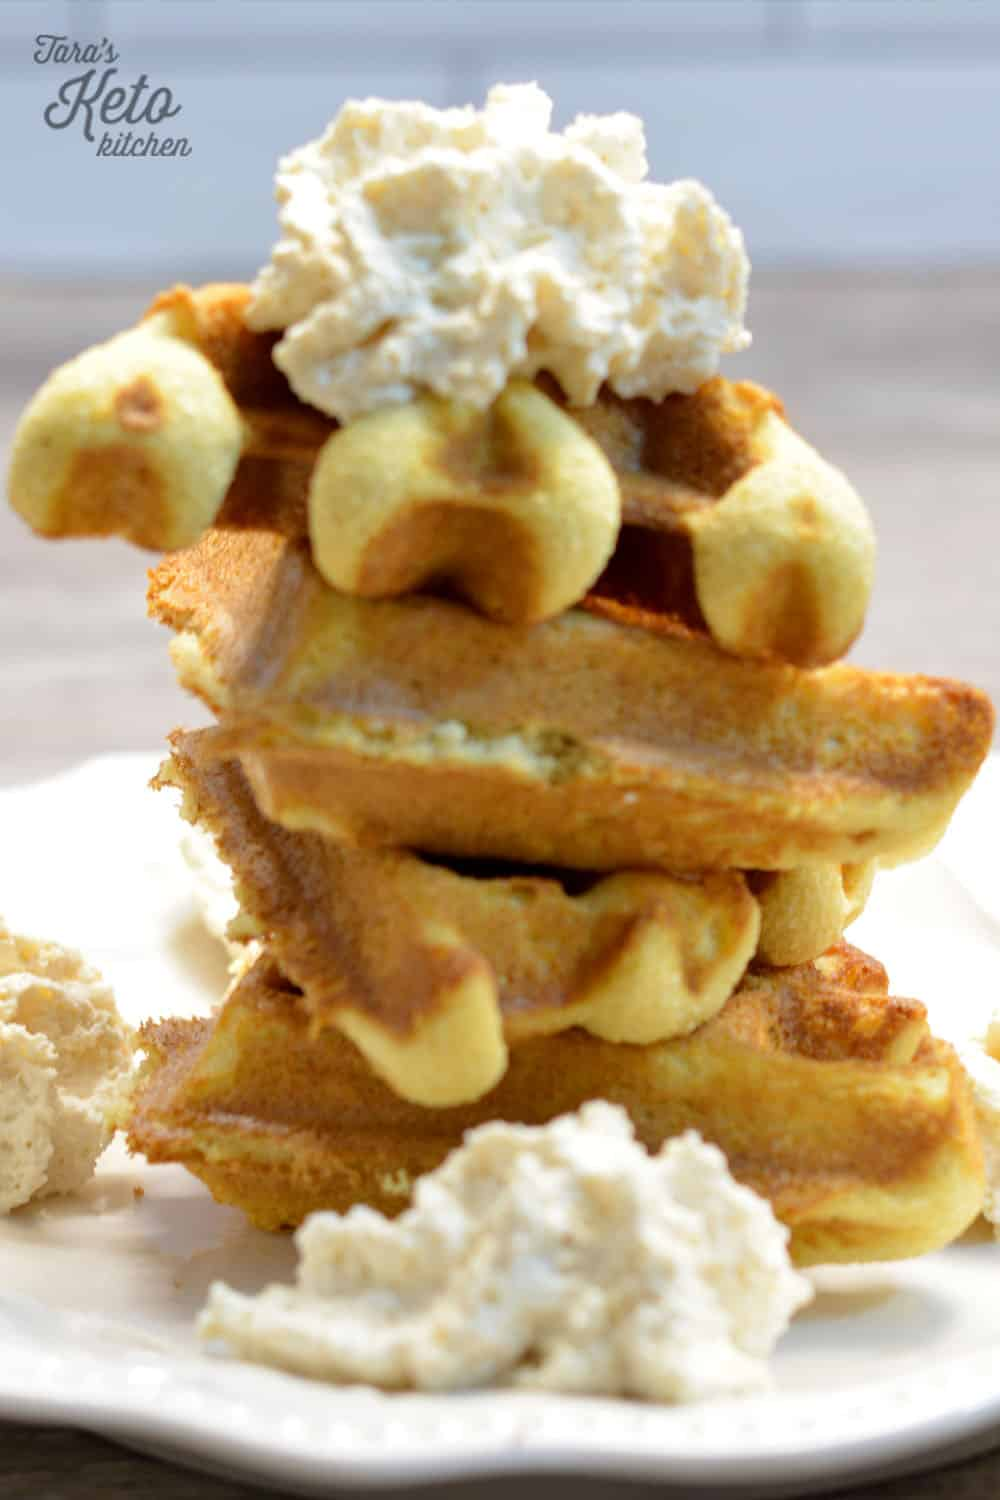 four Belgian keto waffle triangles stacked on top of each other